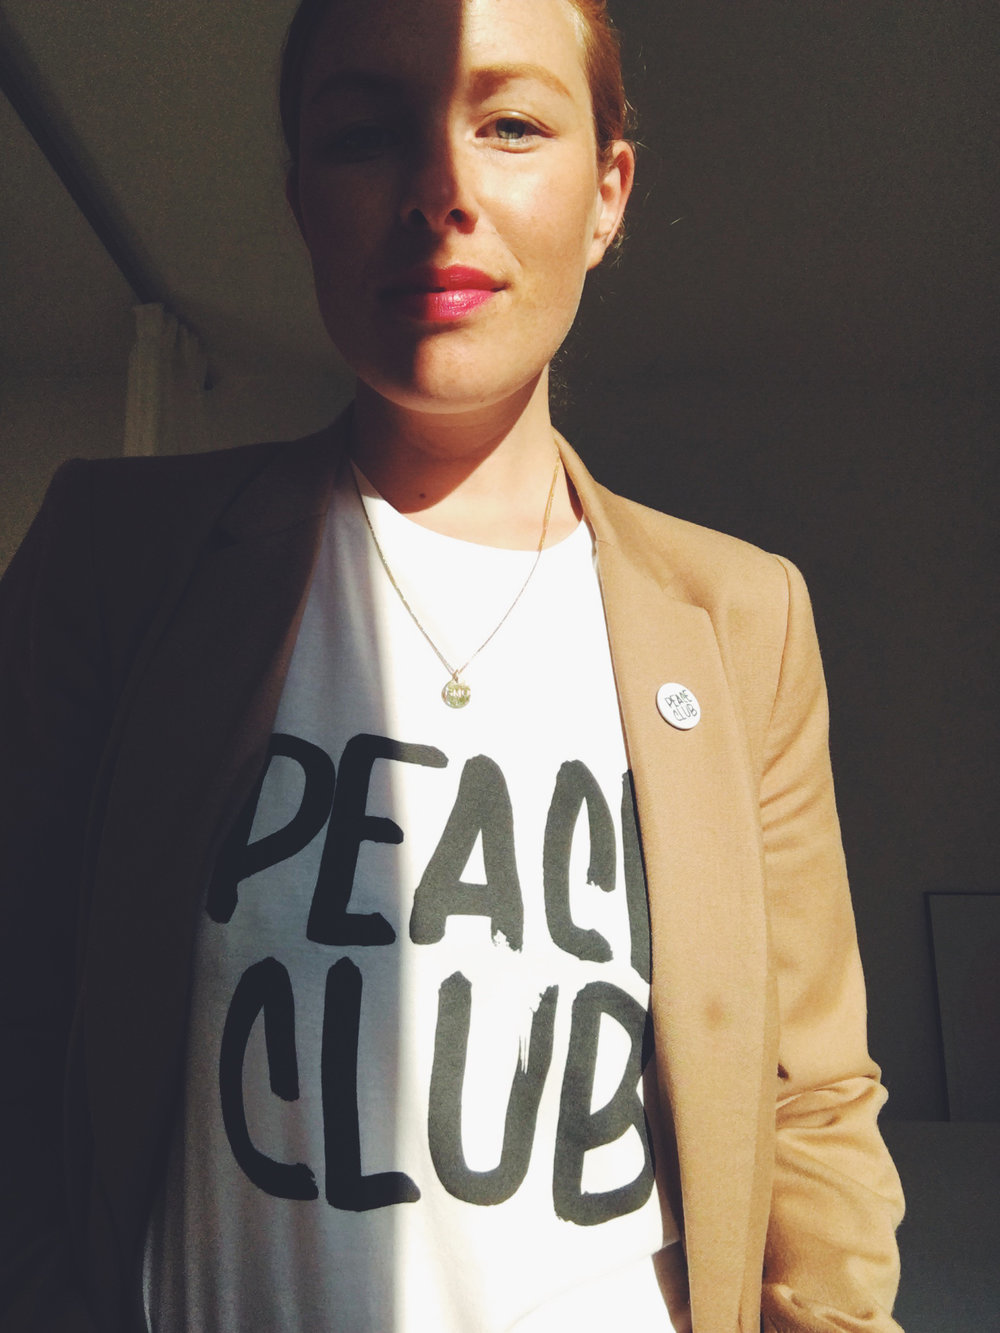 marisaburn_peace_club